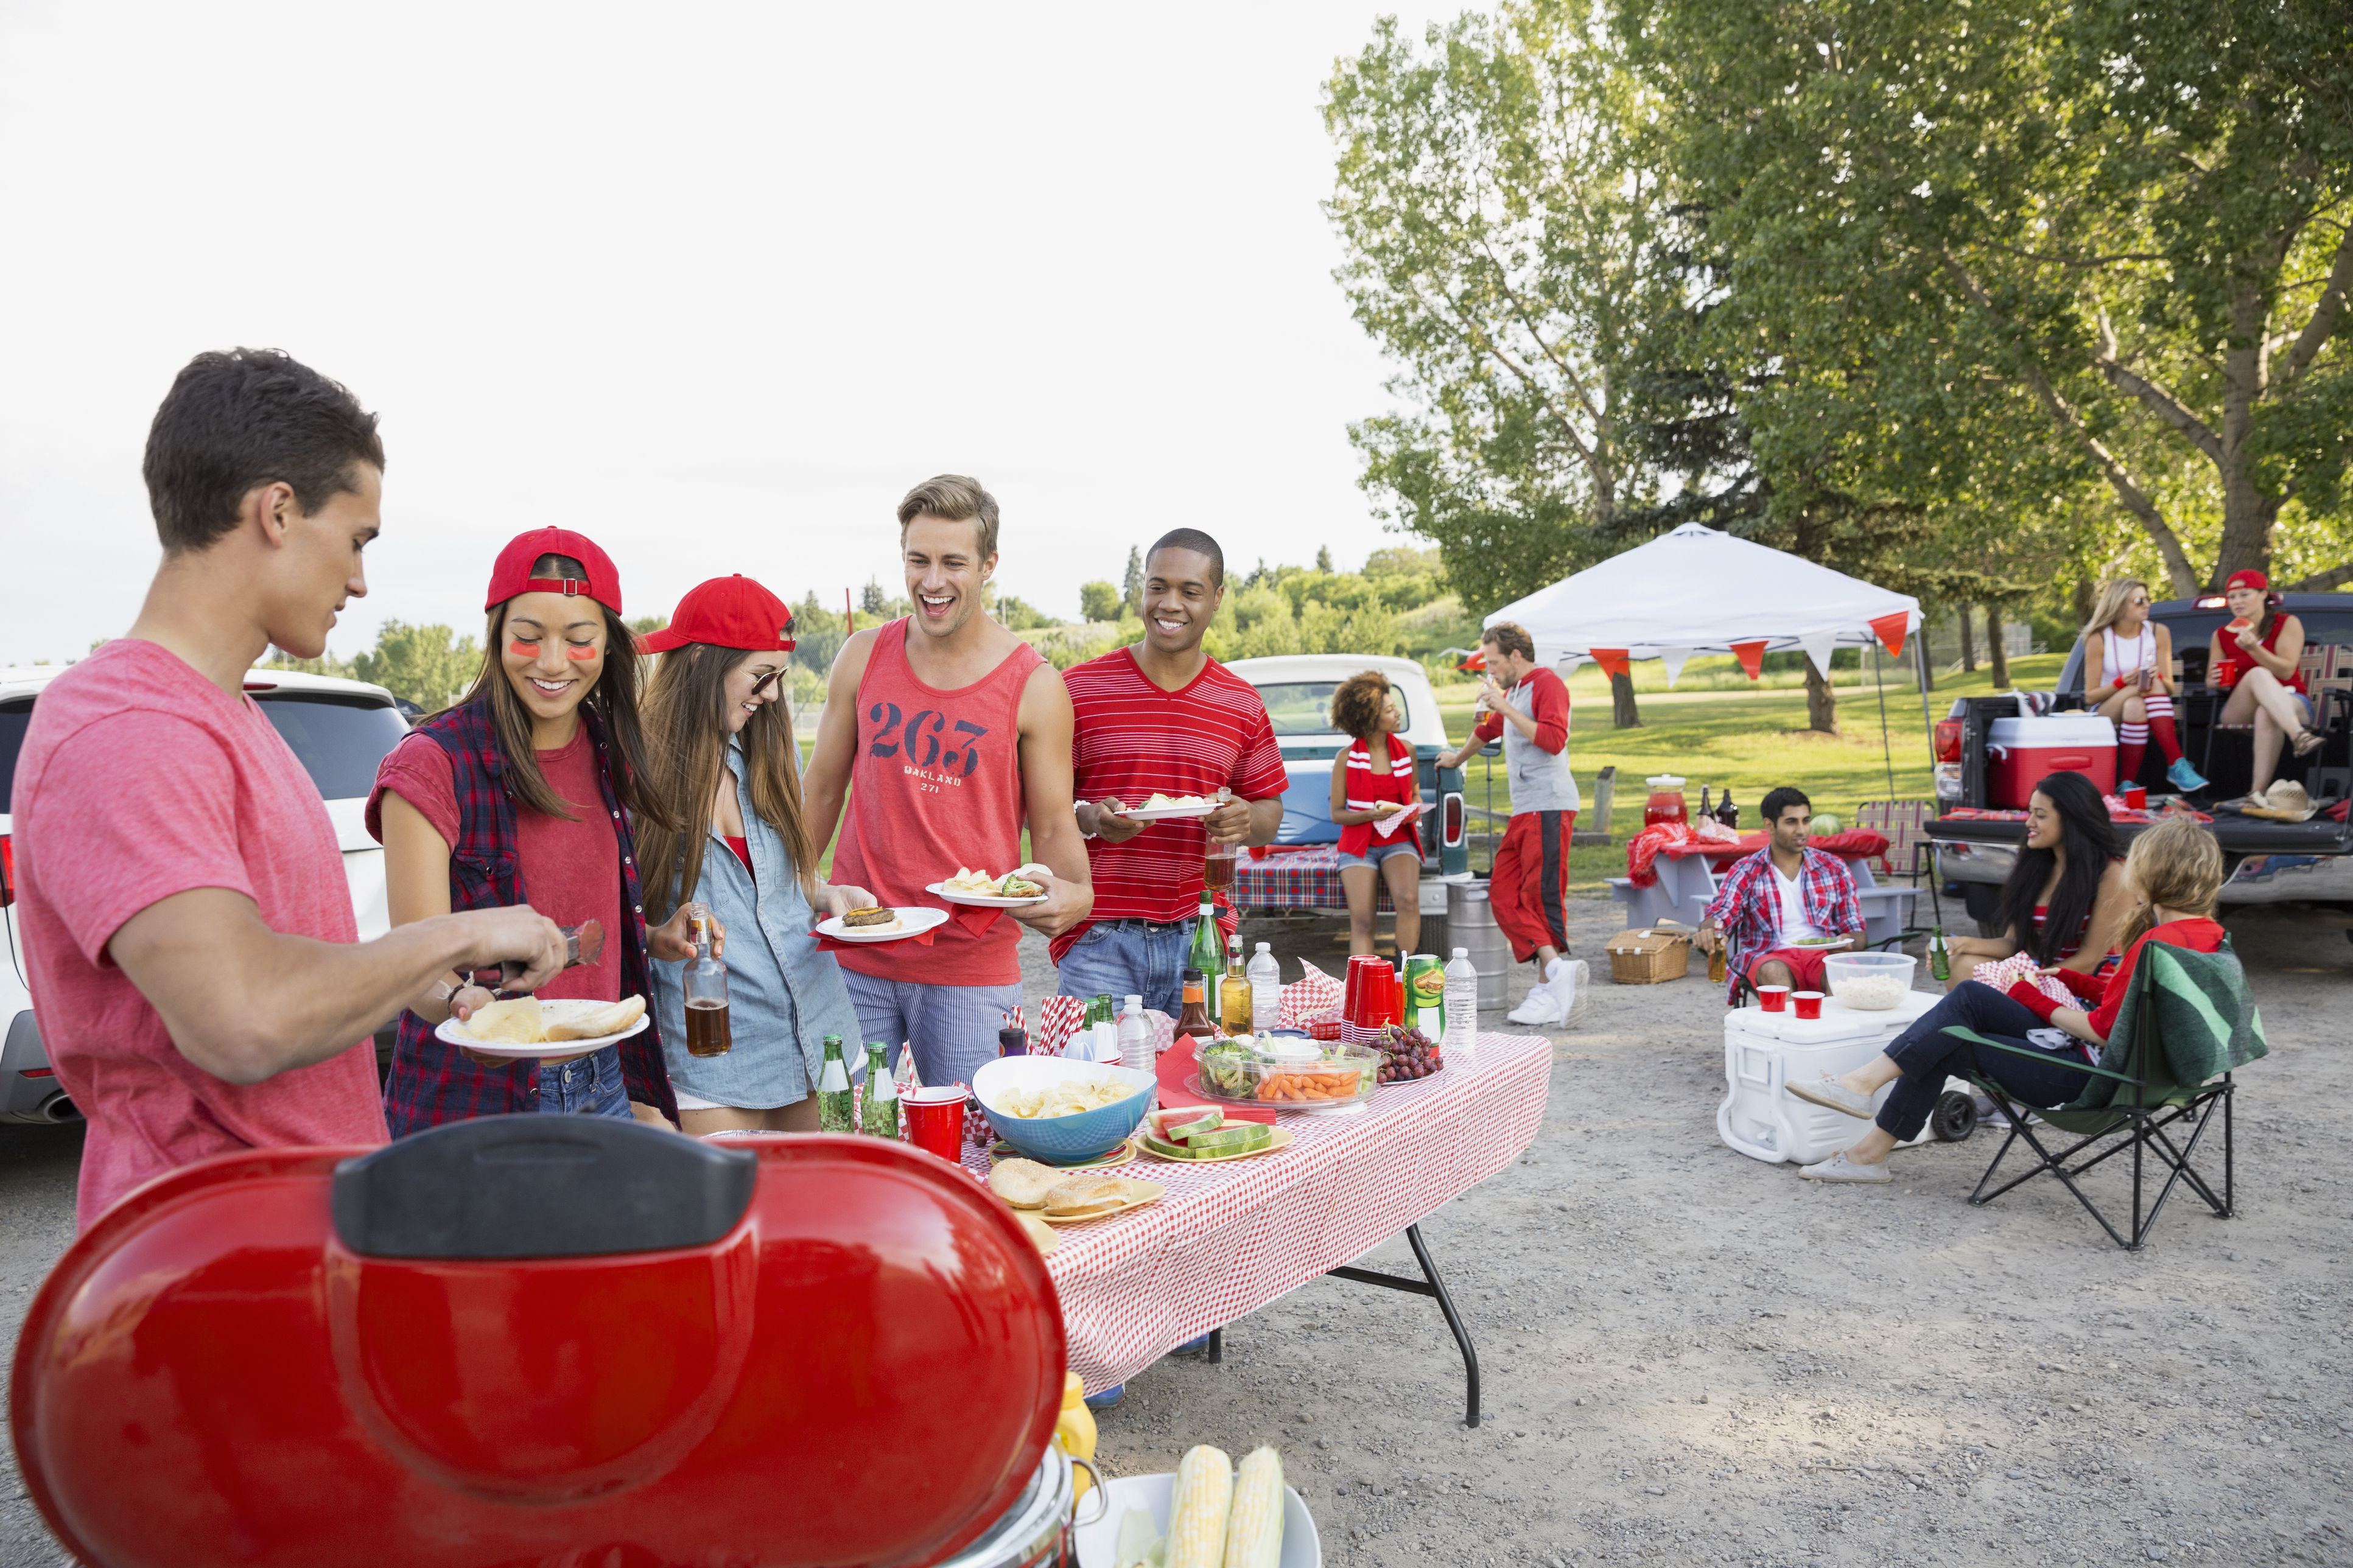 Friends eating at a tailgate barbecue in a field